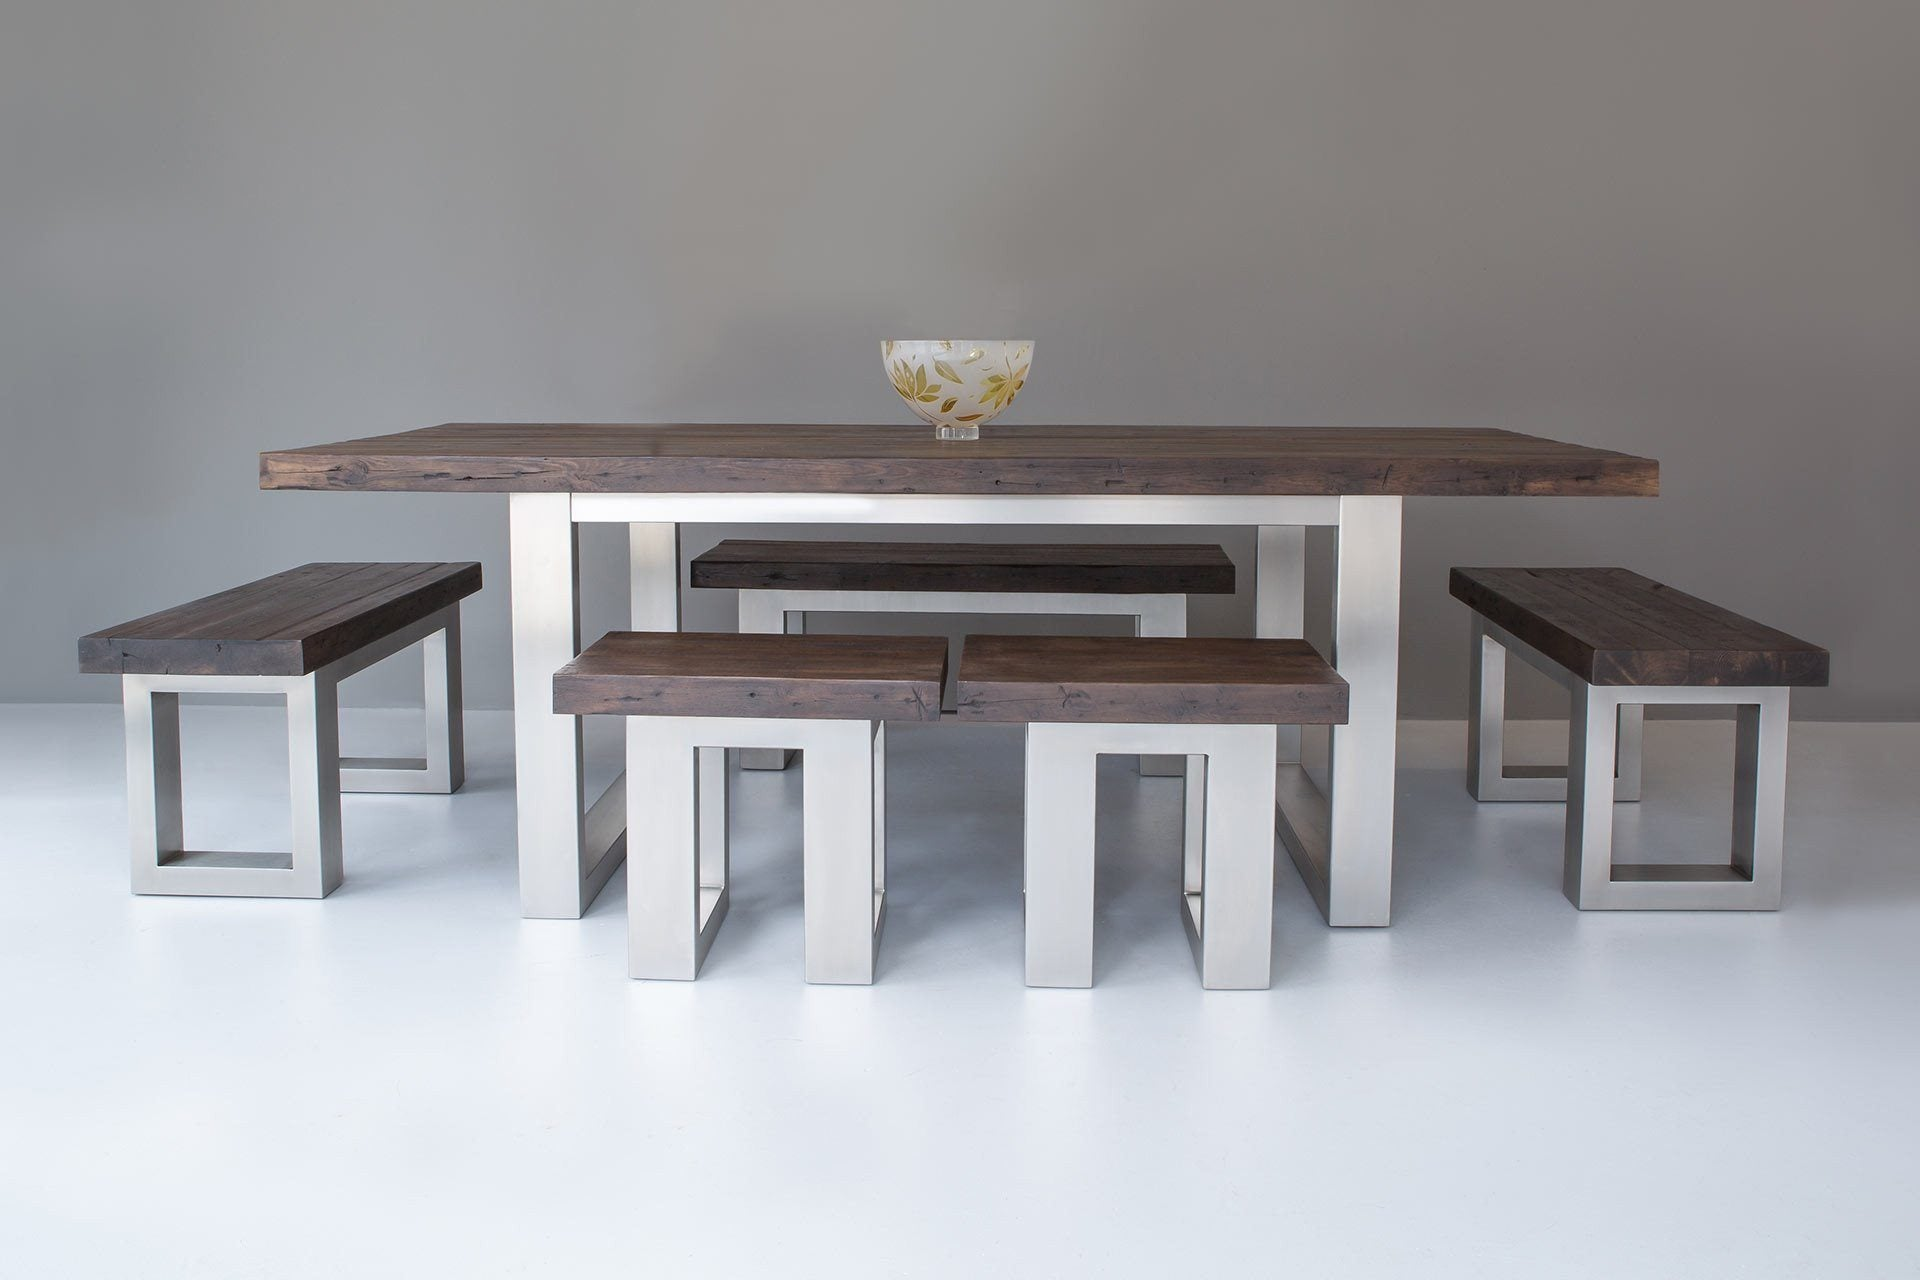 Classic 223cm Long Overhang Table With Benches & Stools (Sold Separately)